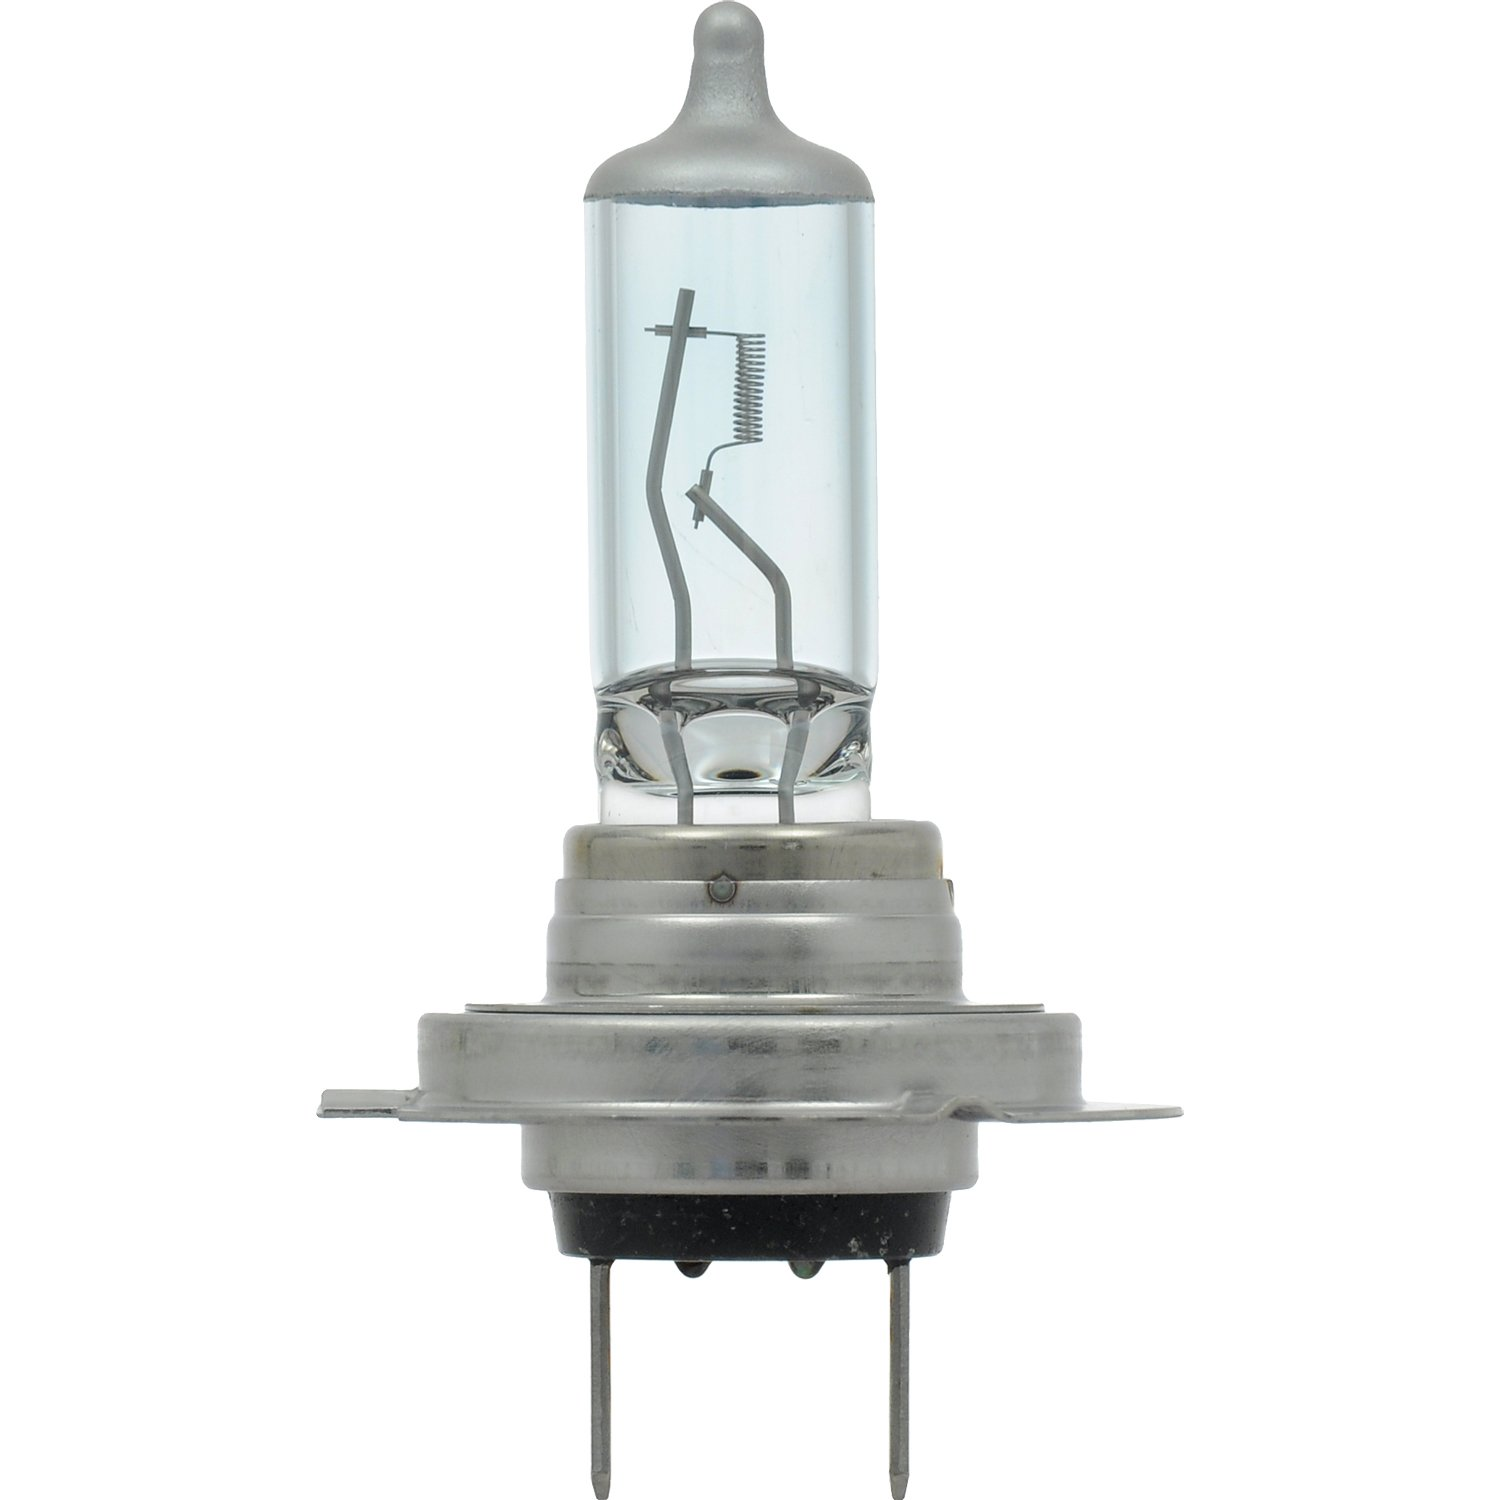 Amazon.com: SYLVANIA - H7 SilverStar - High Performance Halogen Headlight Bulb, High Beam, Low Beam and Fog Replacement Bulb, Brighter Downroad with Whiter ...